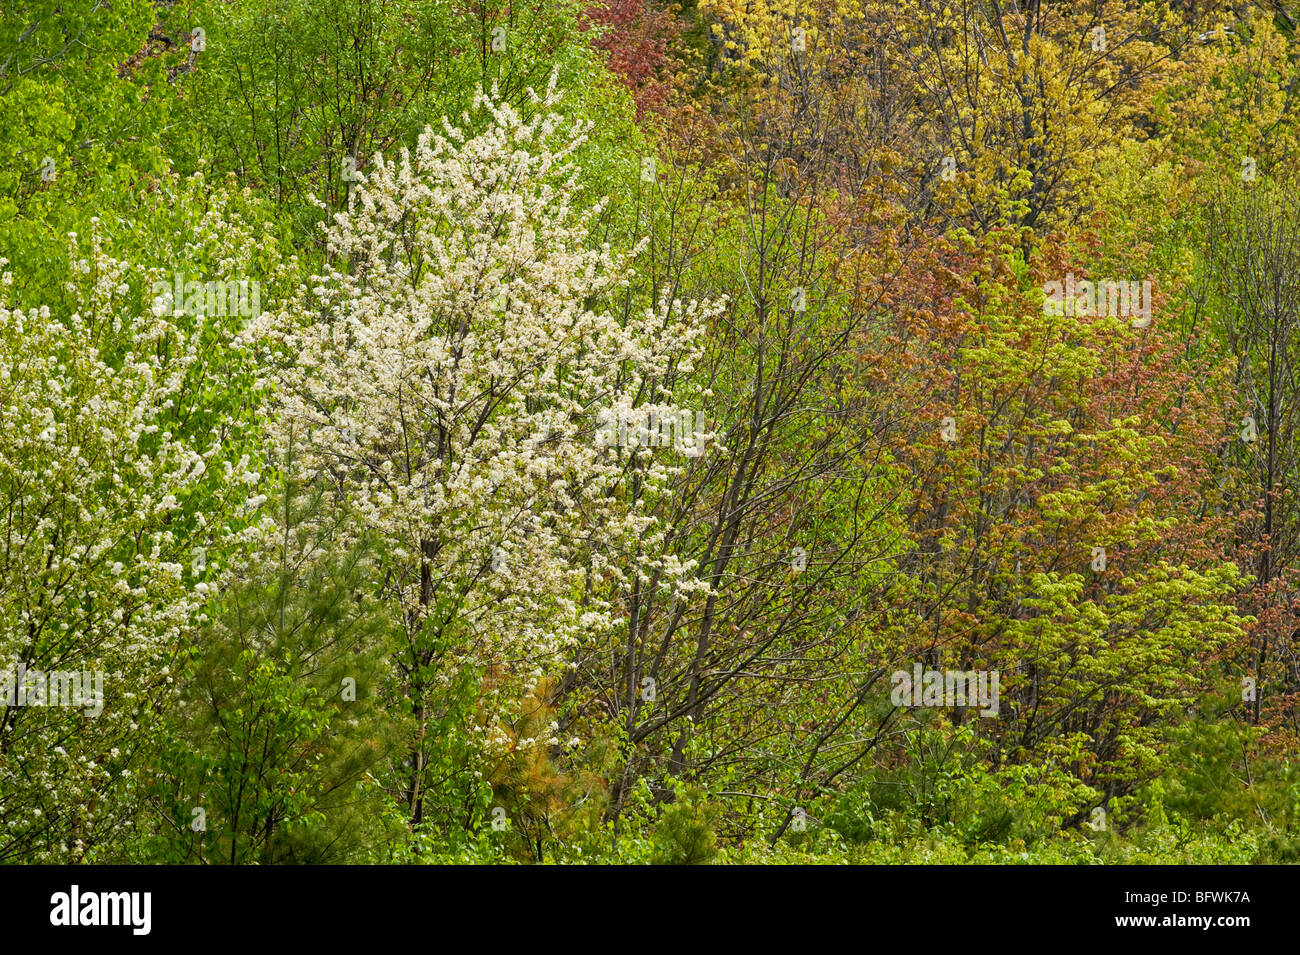 Flowering pin cherry in mixed woodlot with birch and red maple, Killarney, Ontario, Canada - Stock Image